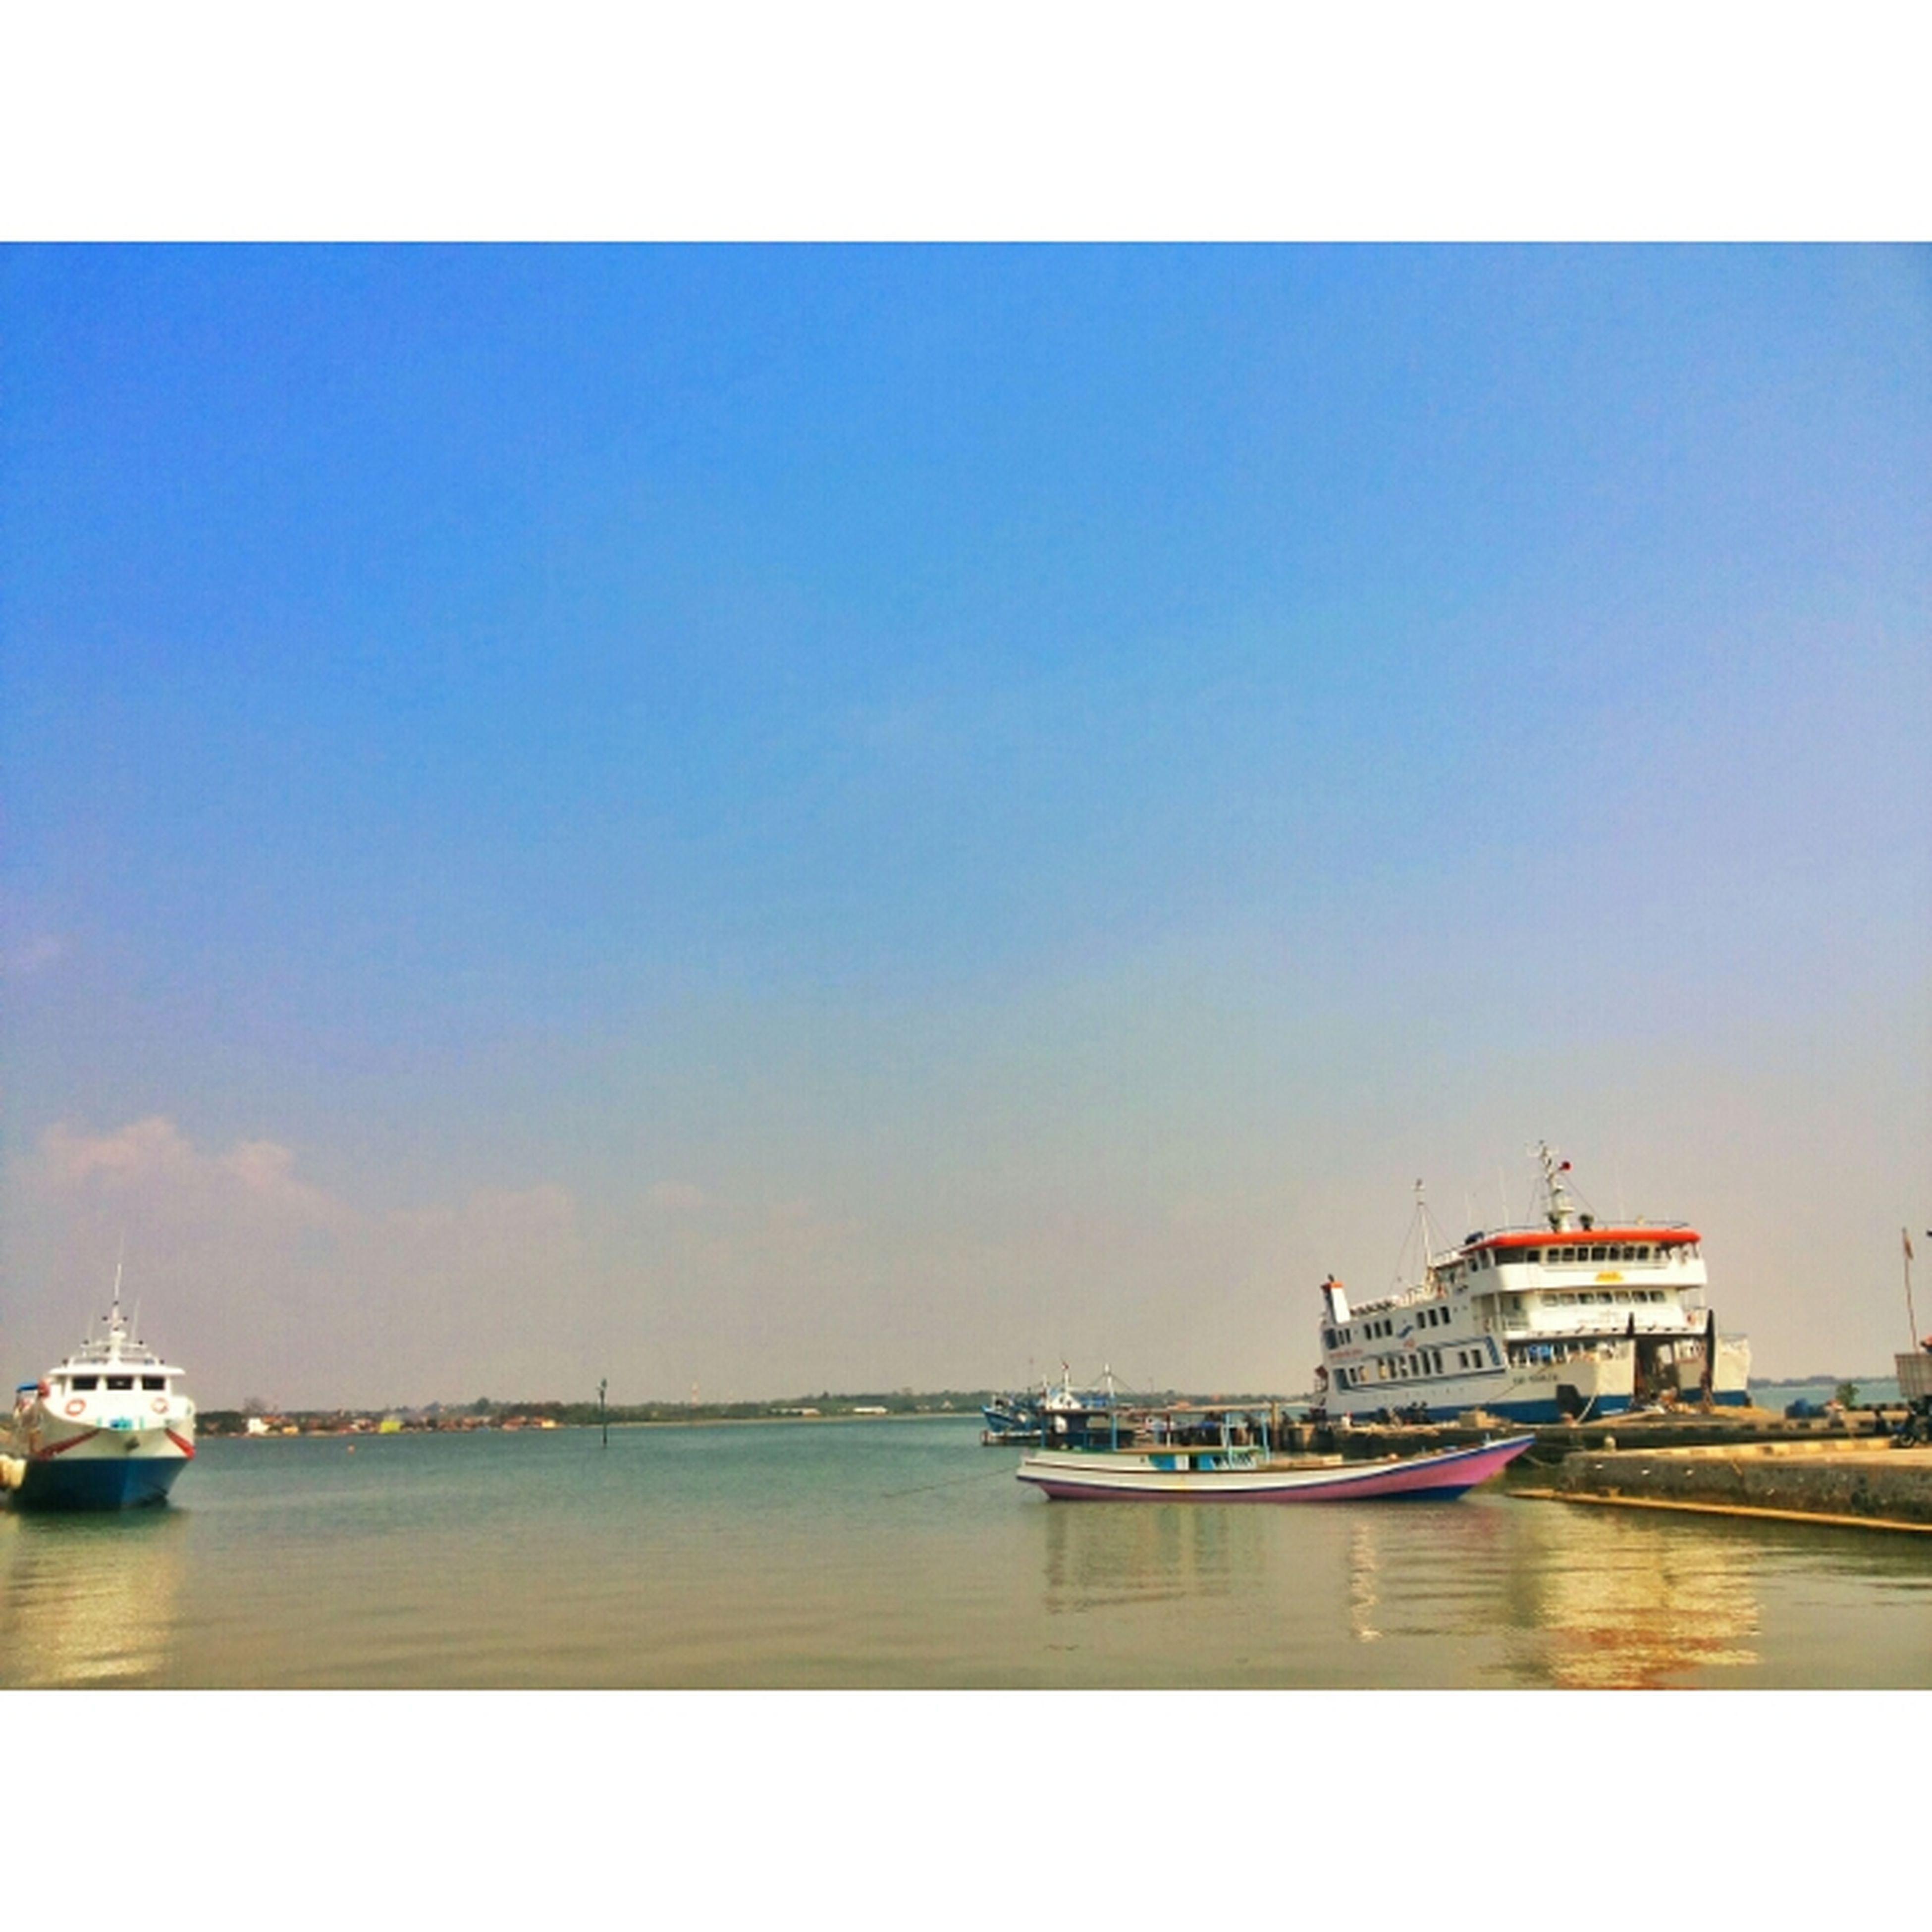 water, nautical vessel, sea, transportation, copy space, boat, clear sky, mode of transport, waterfront, tranquil scene, tranquility, horizon over water, moored, scenics, blue, beauty in nature, transfer print, nature, auto post production filter, sky